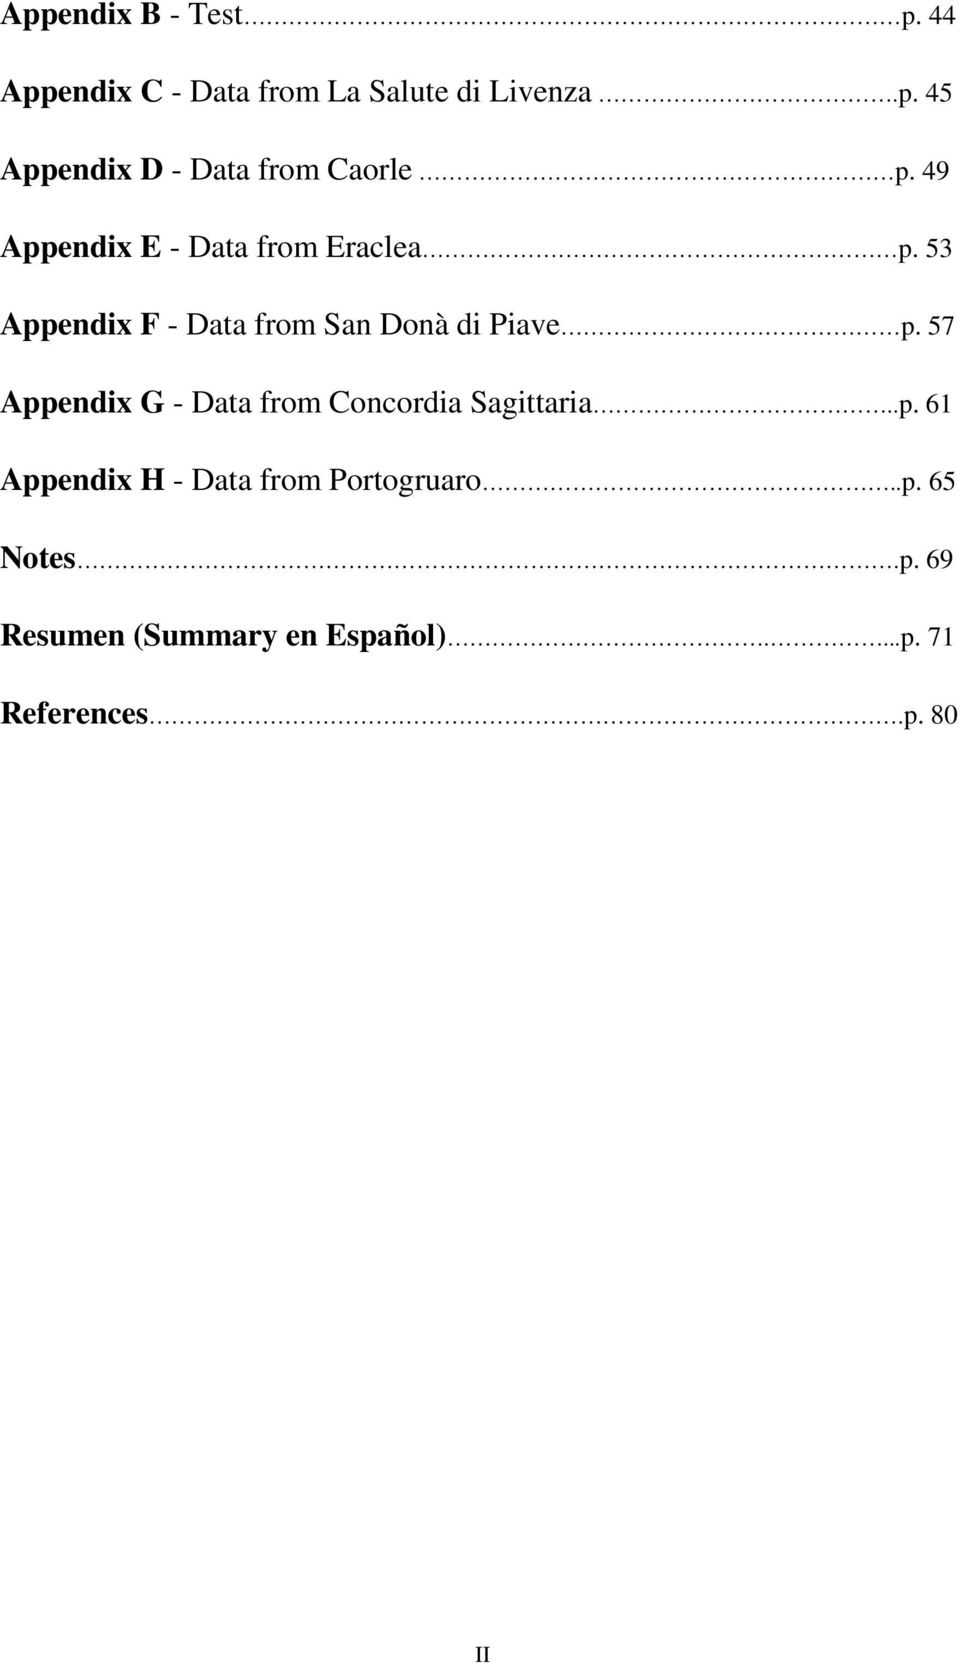 57 Appendix G - Data from Concordia Sagittaria..p. 61 Appendix H - Data from Portogruaro.